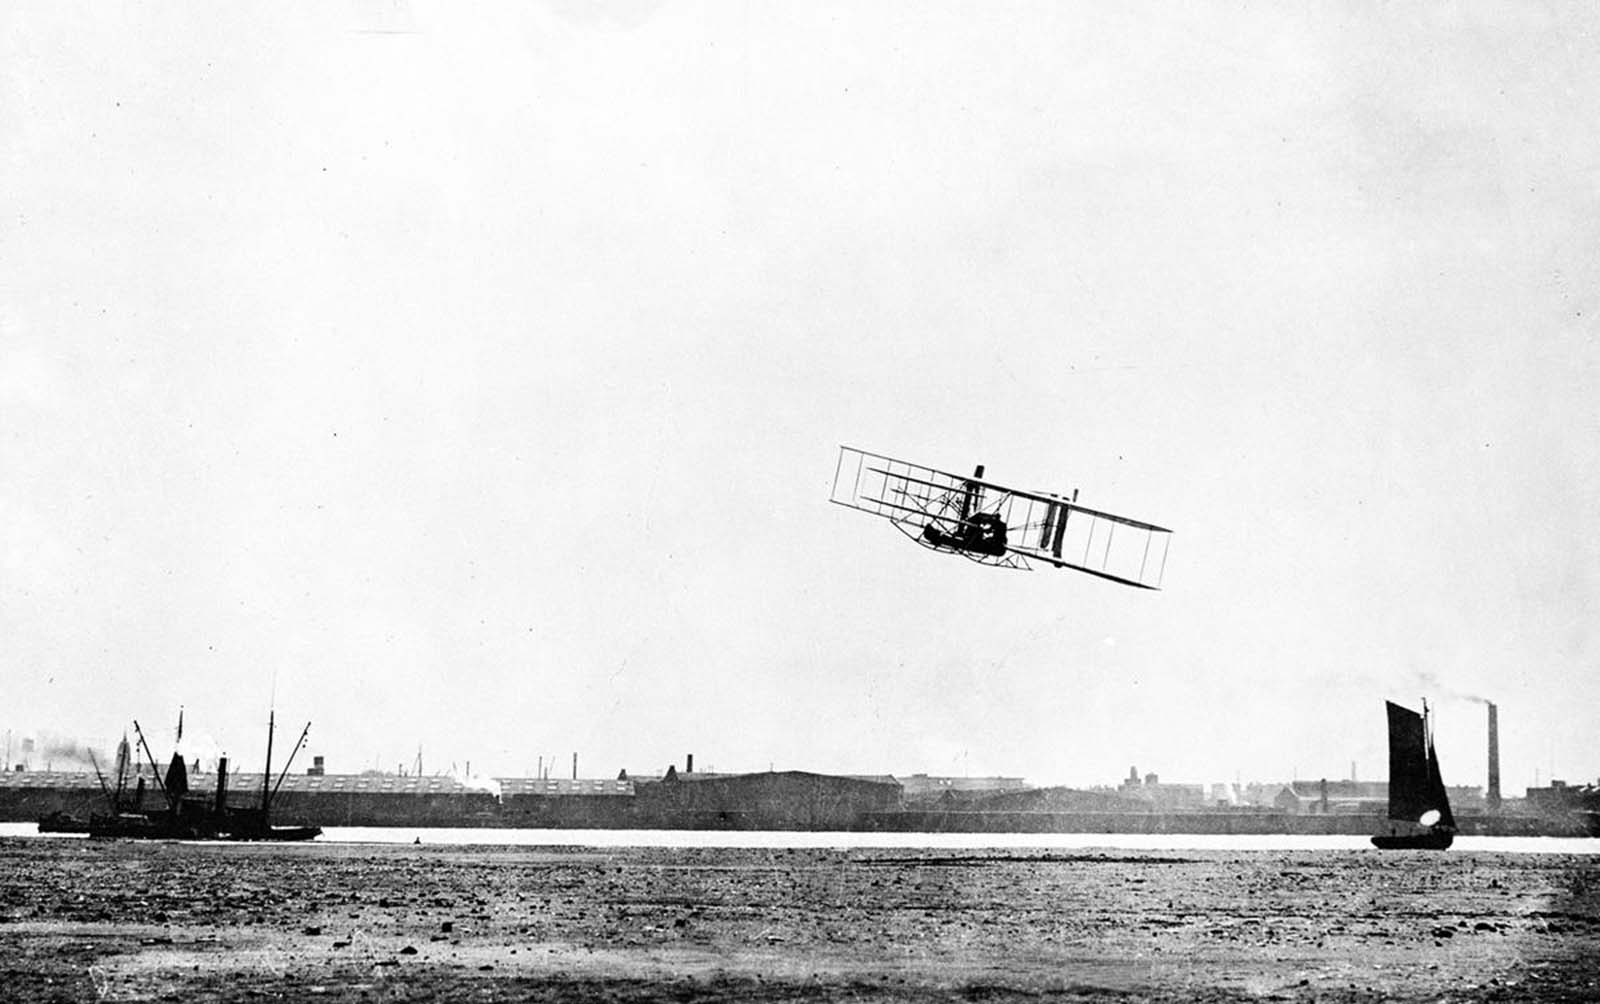 Wilbur Wright makes a 33-minute-long flight during the Hudson-Fulton Celebration in New York in 1909. Wright started from Governors Island to fly up the Hudson River to Grant's Tomb and back, a feat witnessed by hundreds of thousands of New York residents.